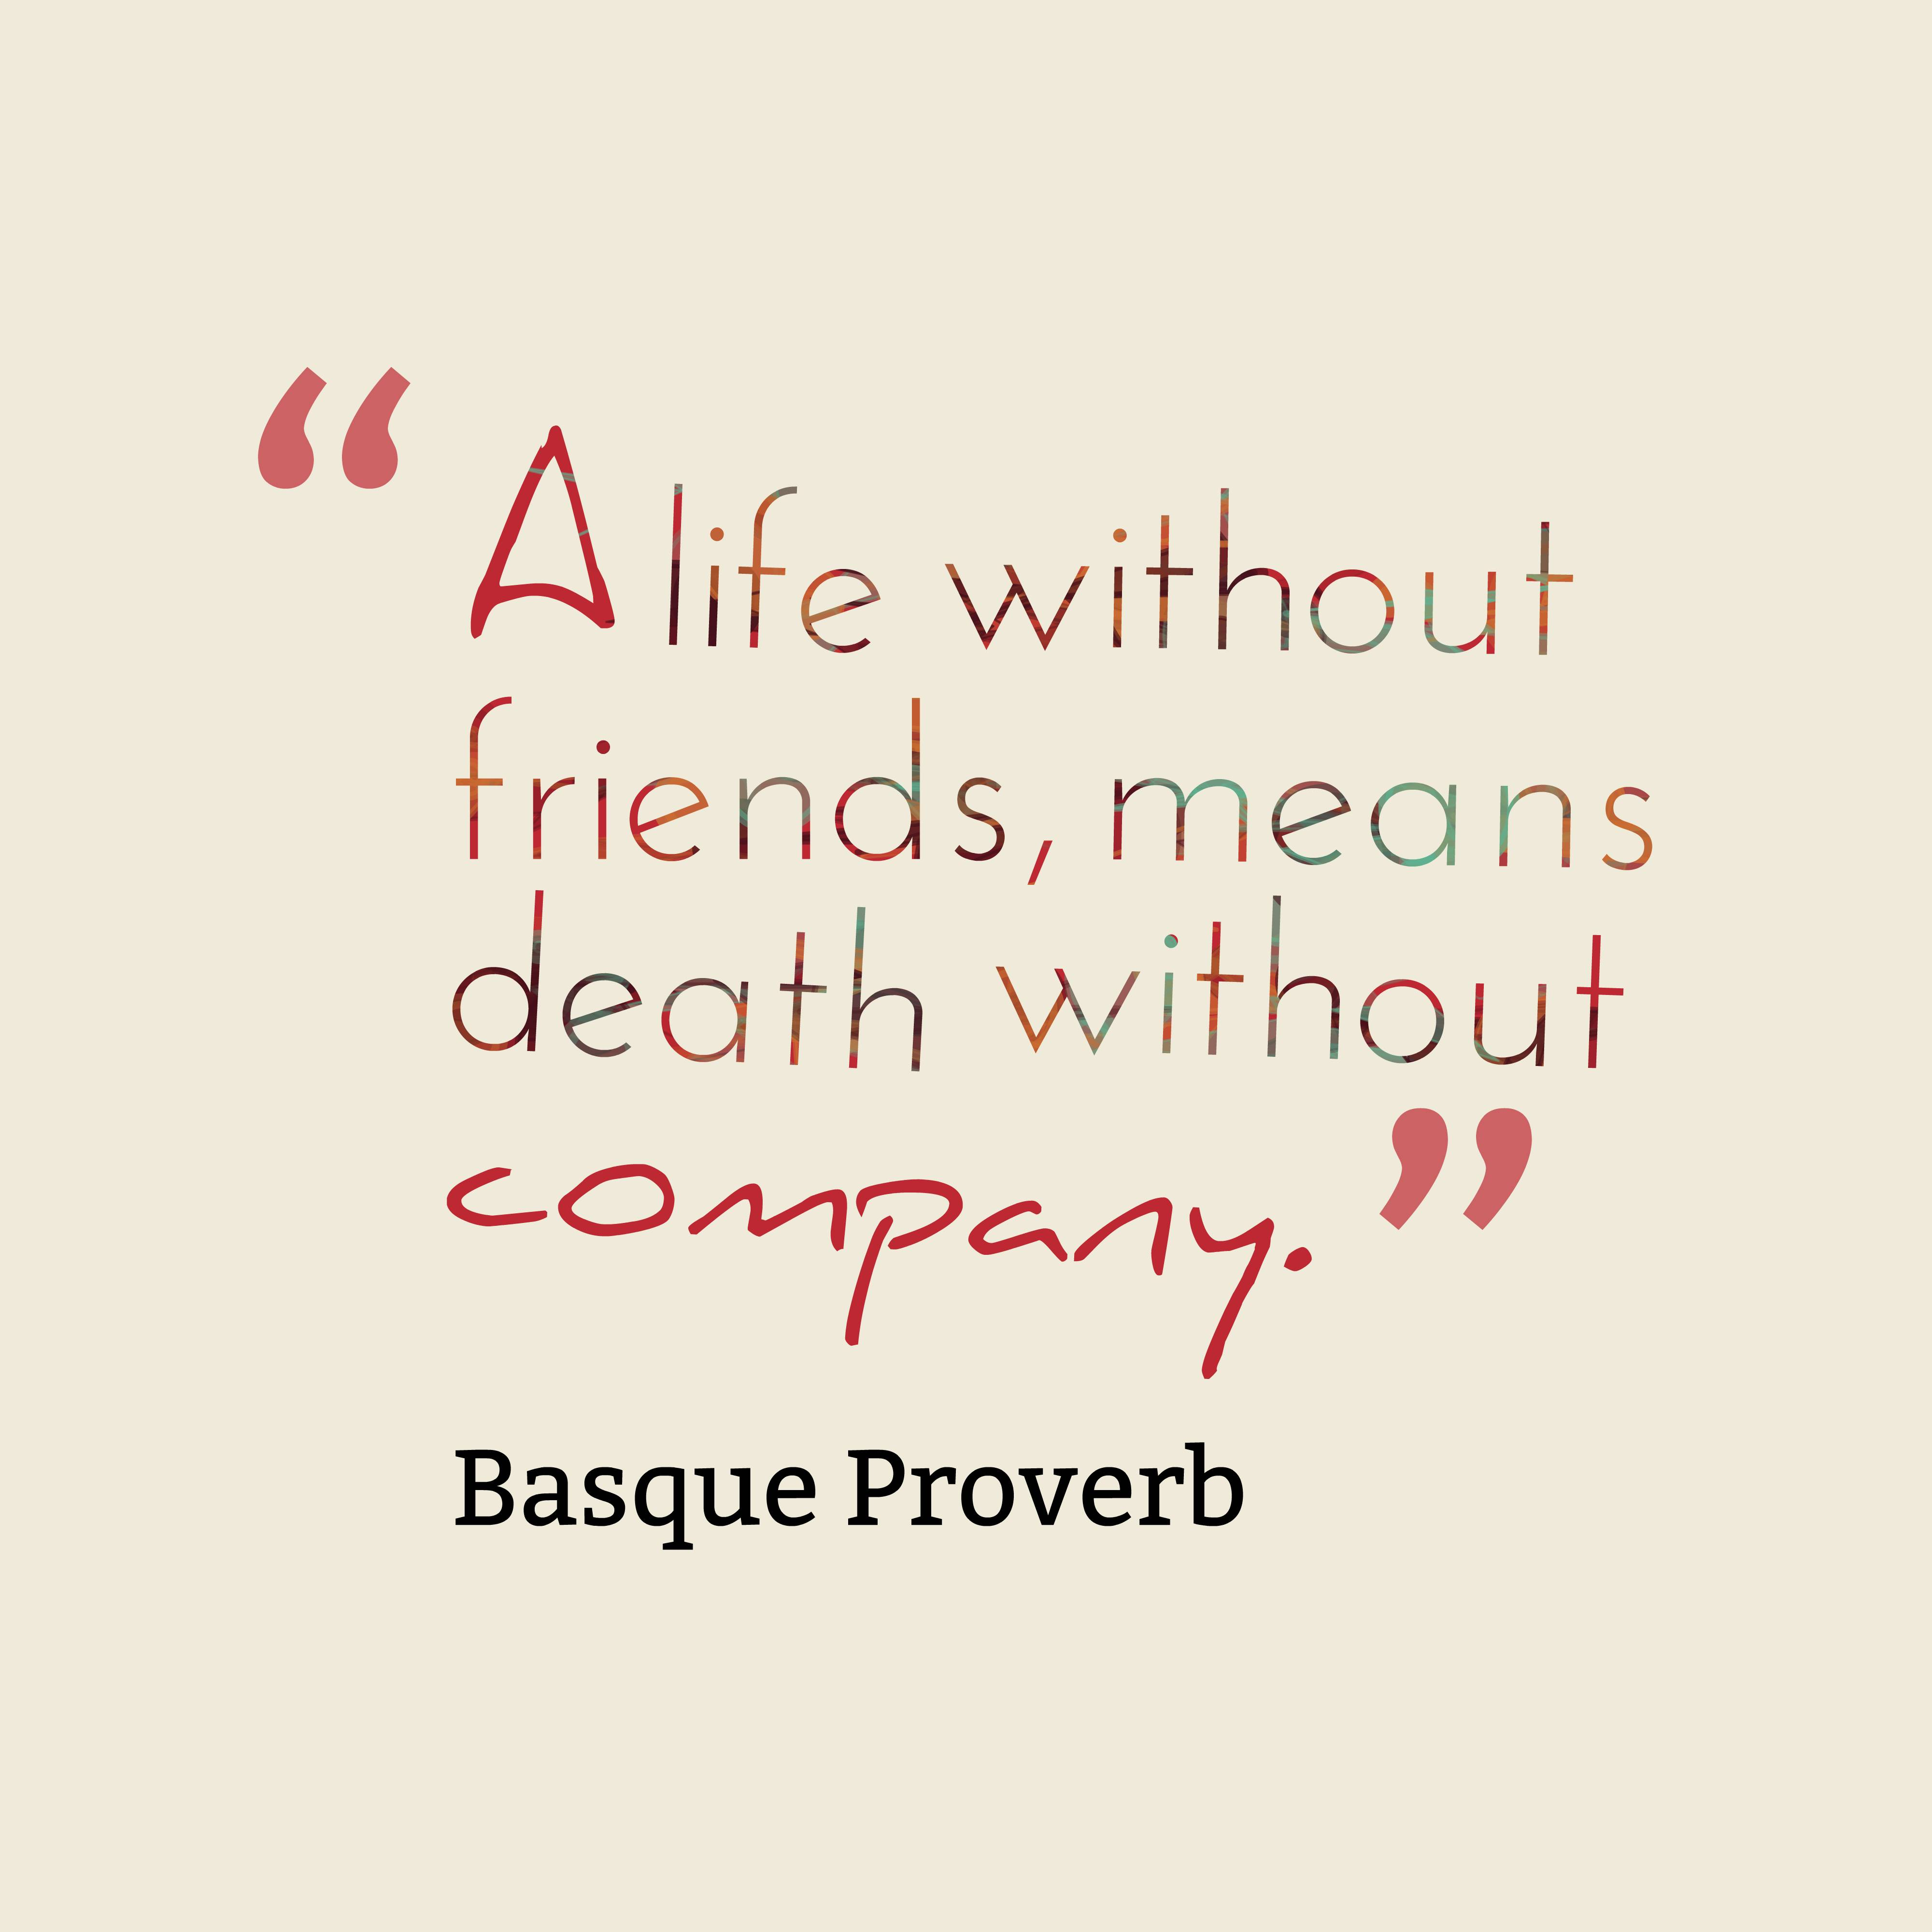 A life without friends means quotes by Basque Proverb 74